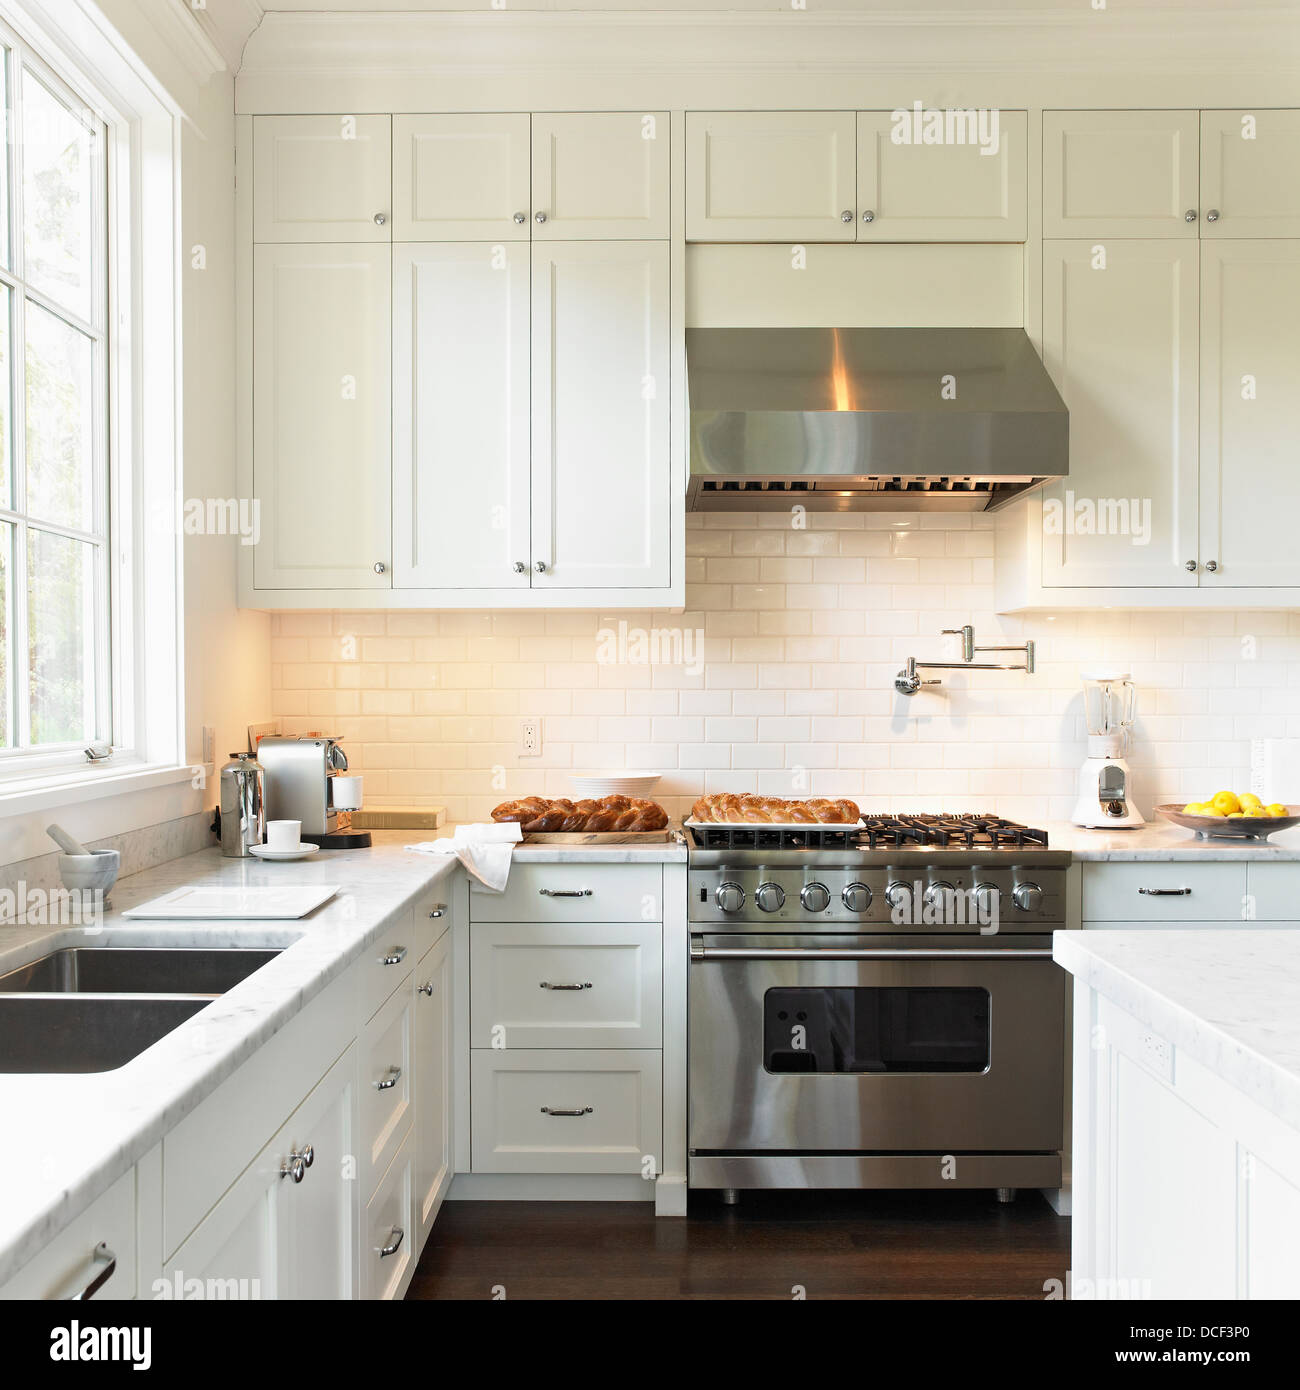 Cream Kitchen With High End Viking Stove And Range Hood;Victoria Vancouver  Island British Columbia Canada